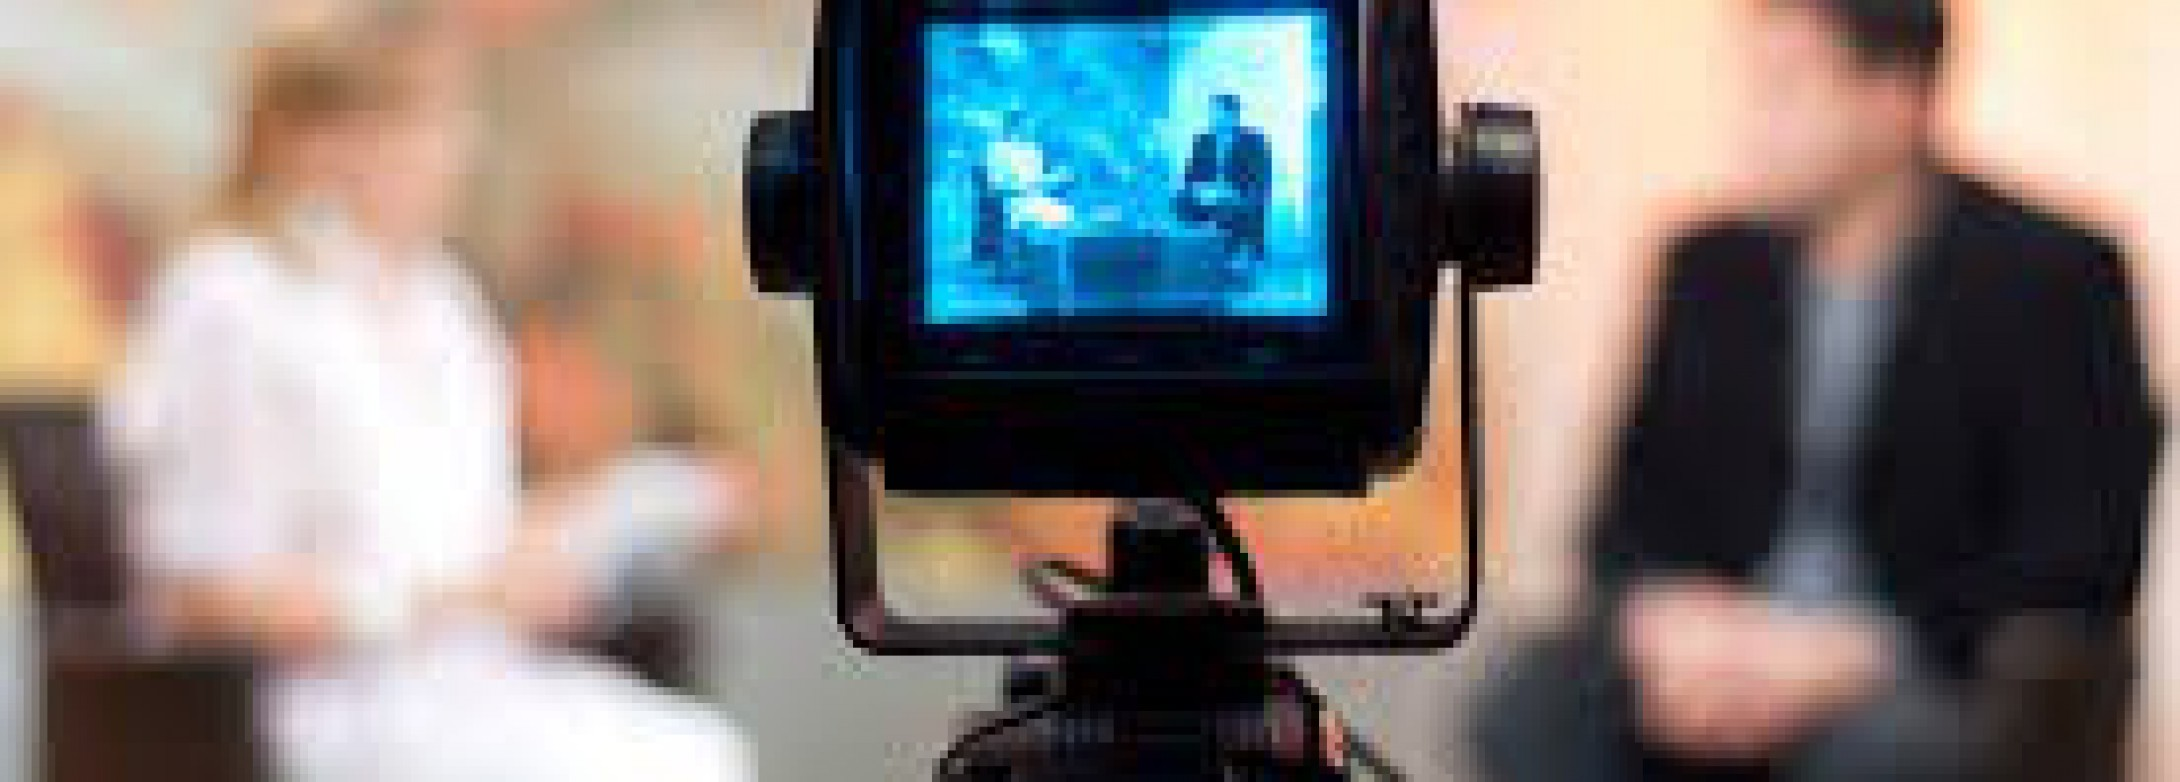 Tips on Acing A Media Interview